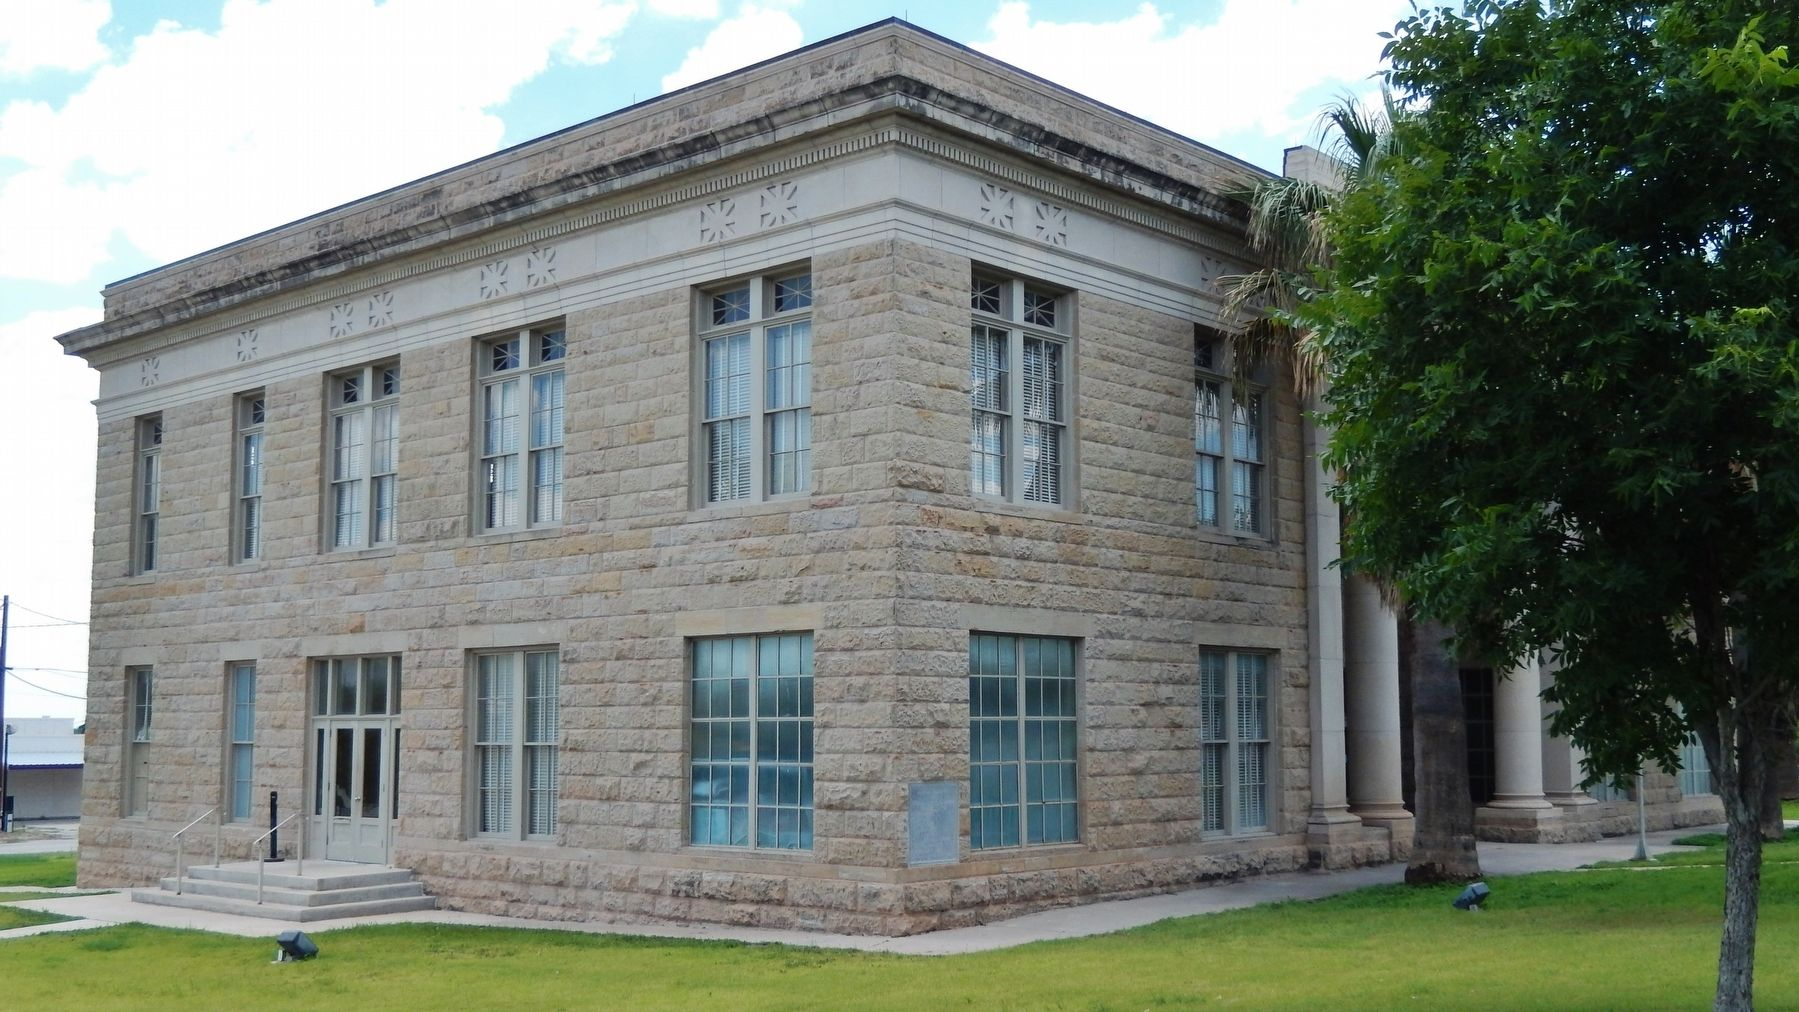 Dimmit County Courthouse (<i>nw corner view</i>) image. Click for full size.